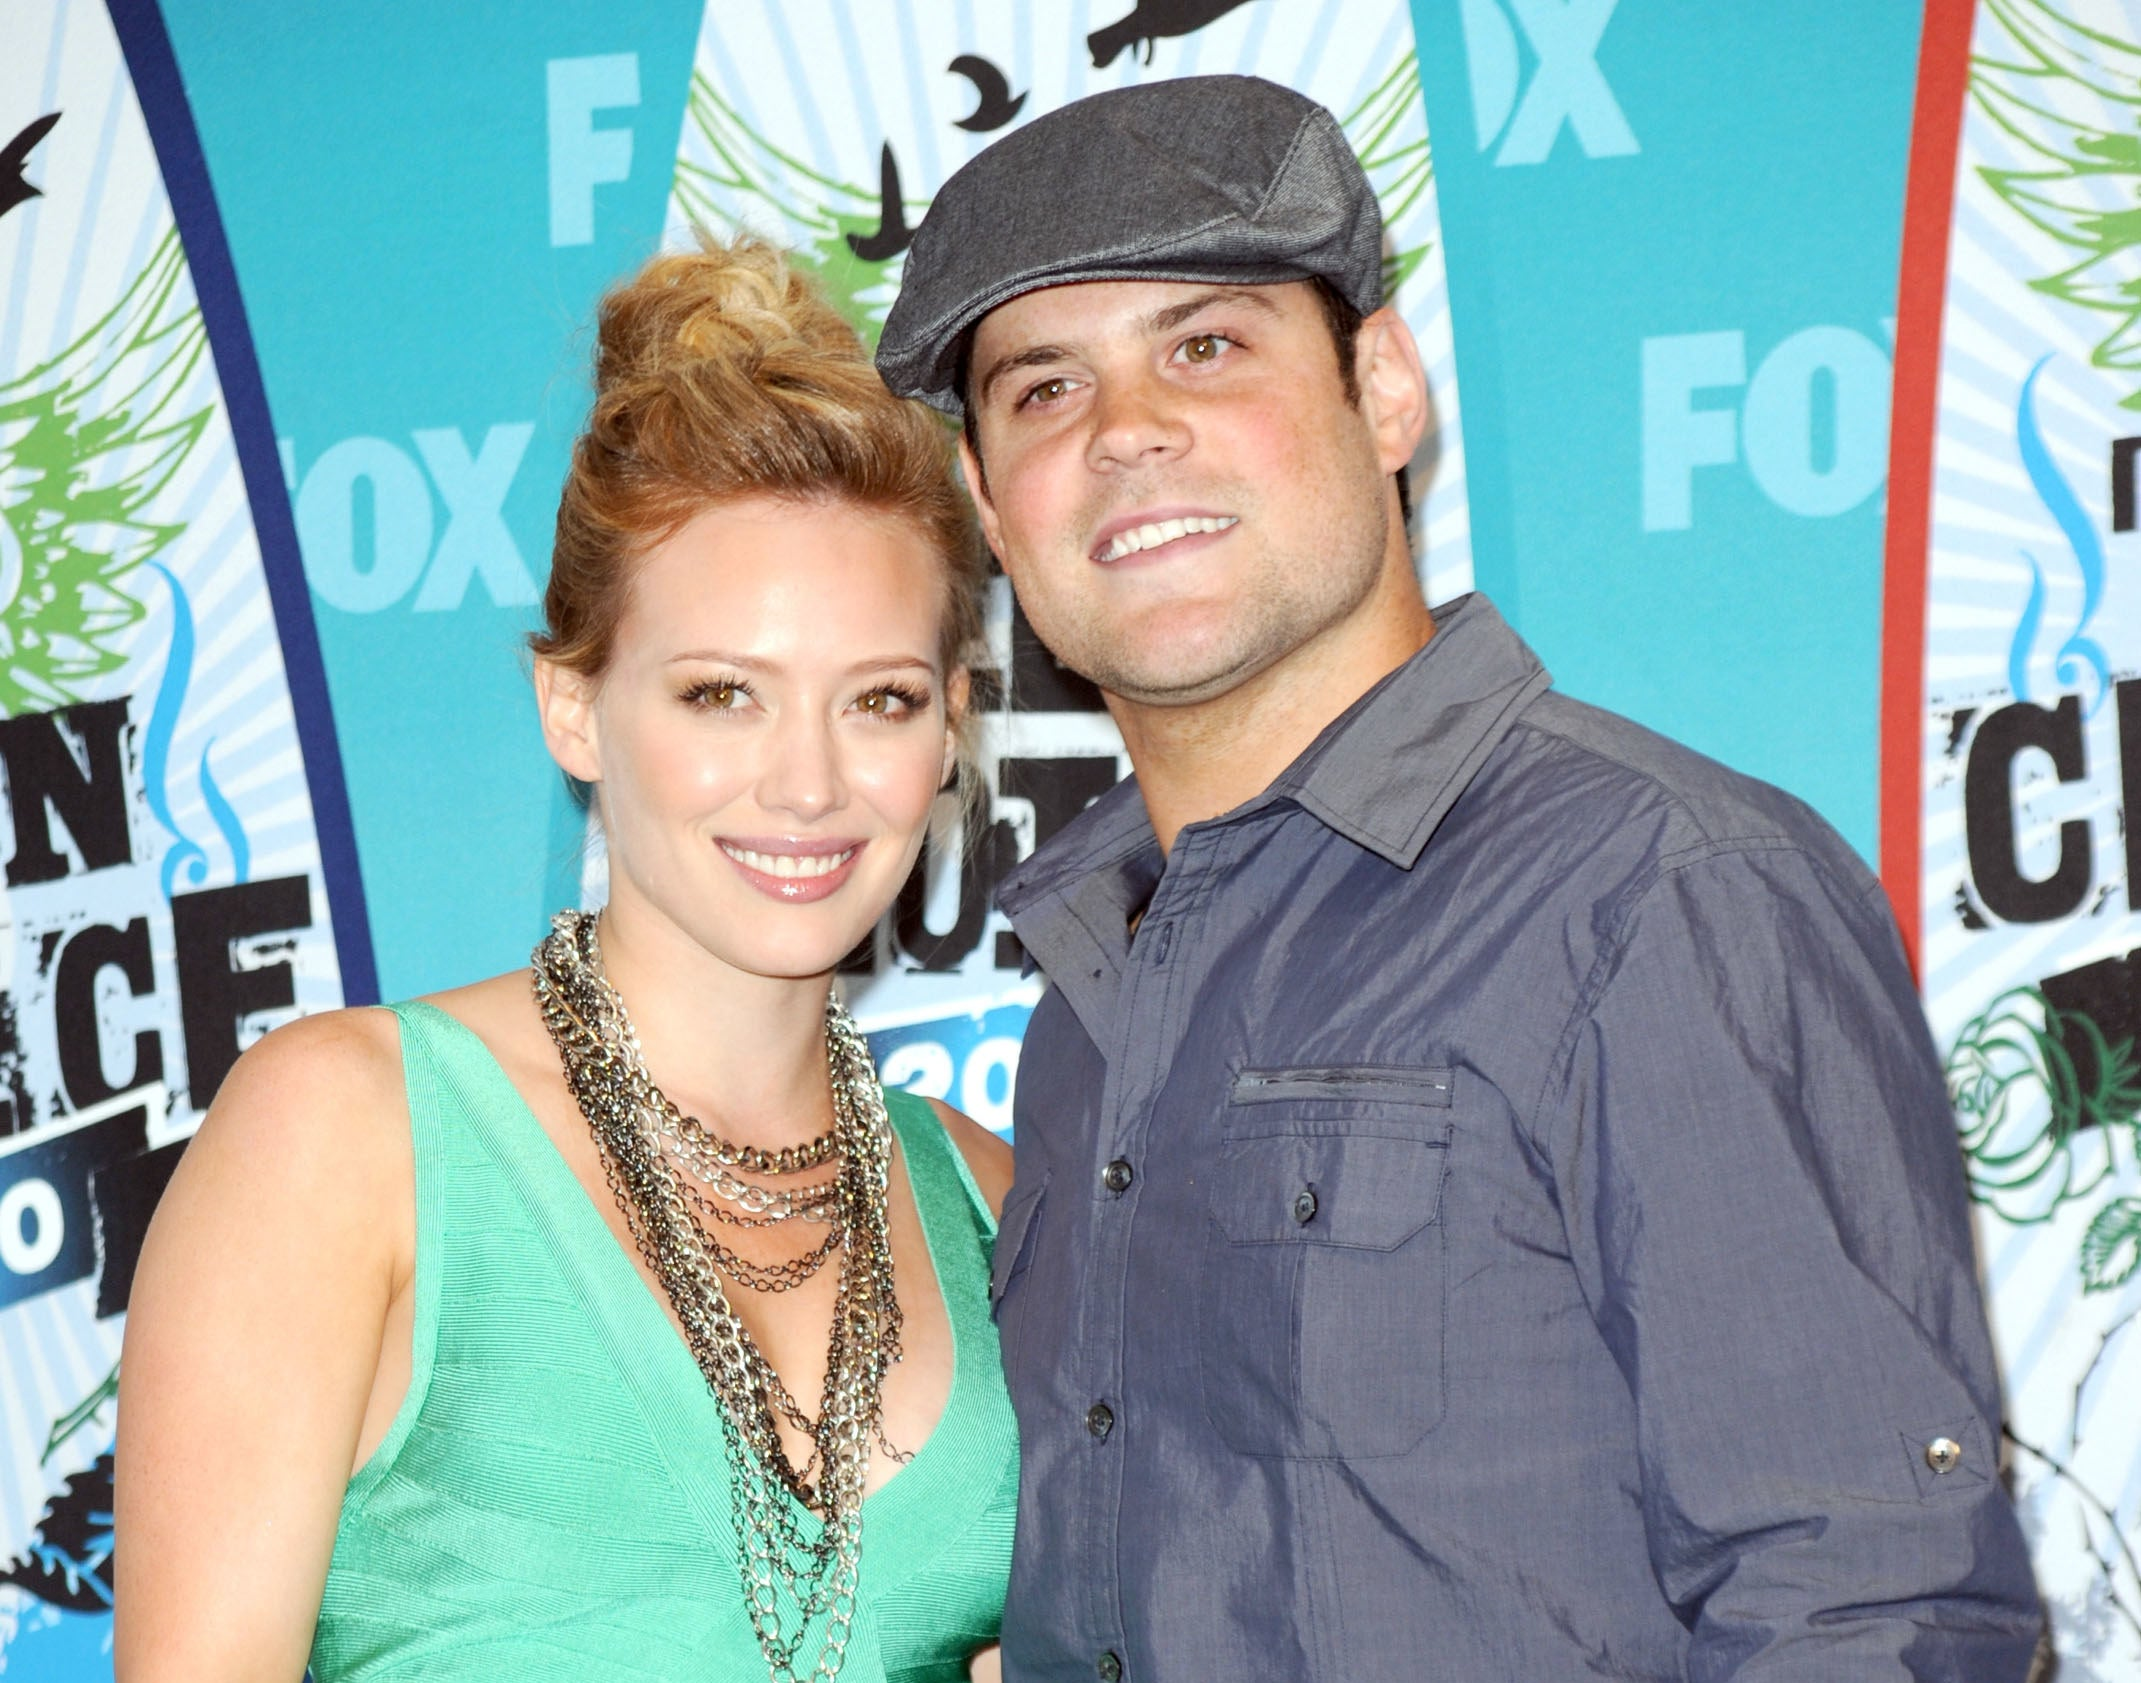 Hilary Duff and Mike Comrie posing in the press room of the 2010 Teen Choice Awards.